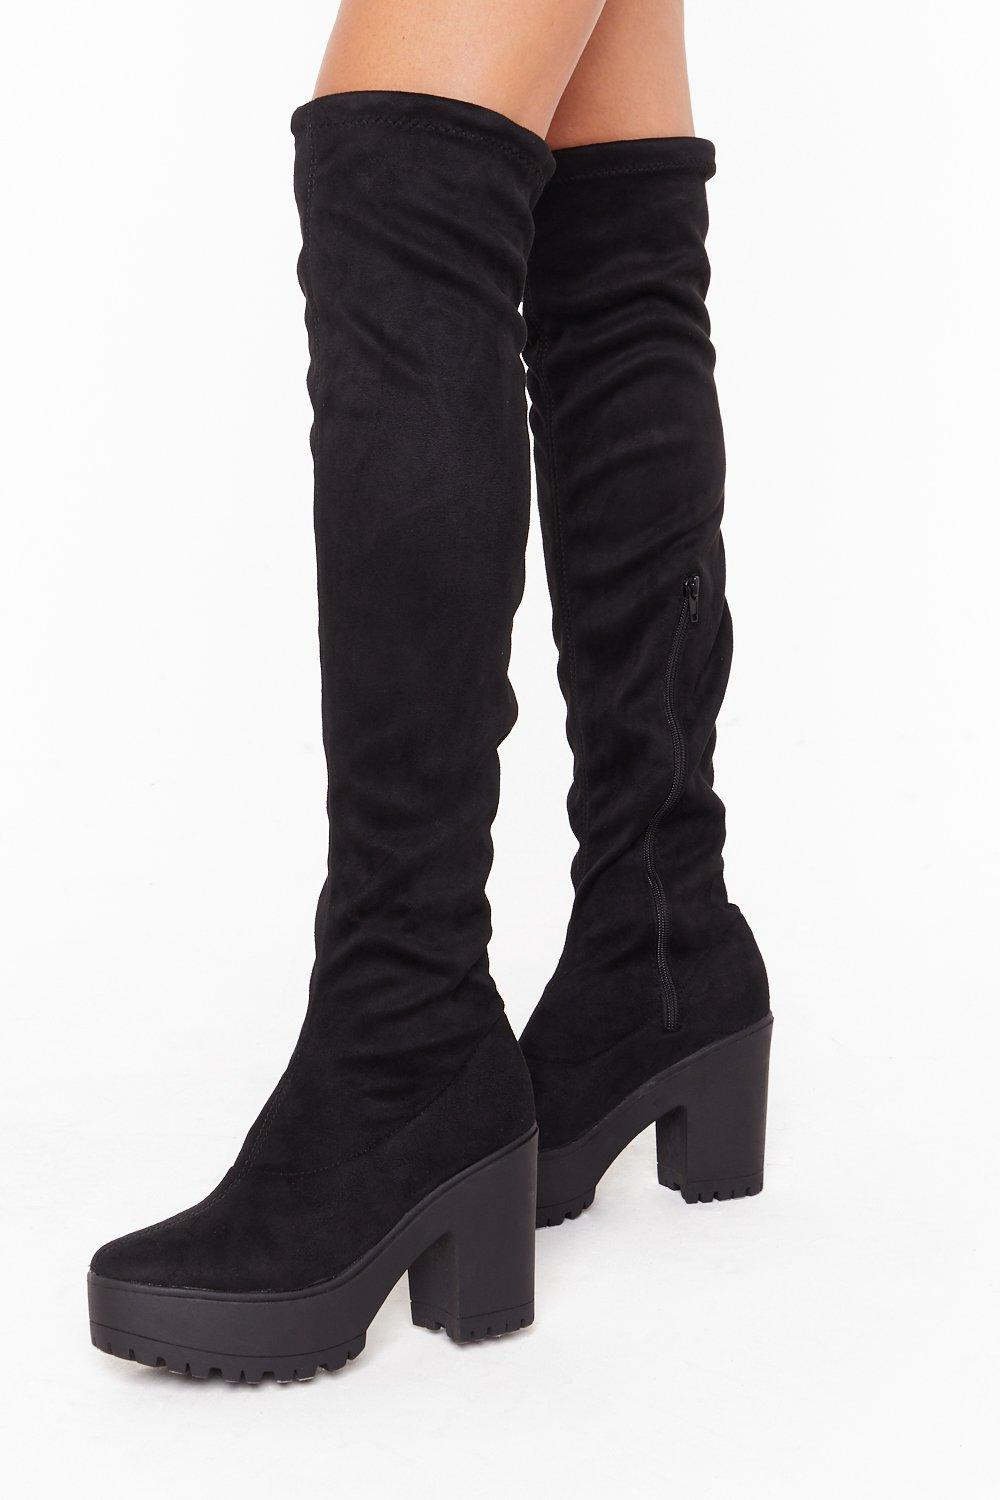 Image of Suede Me Love Faux Suede Over-the-Knee Boots